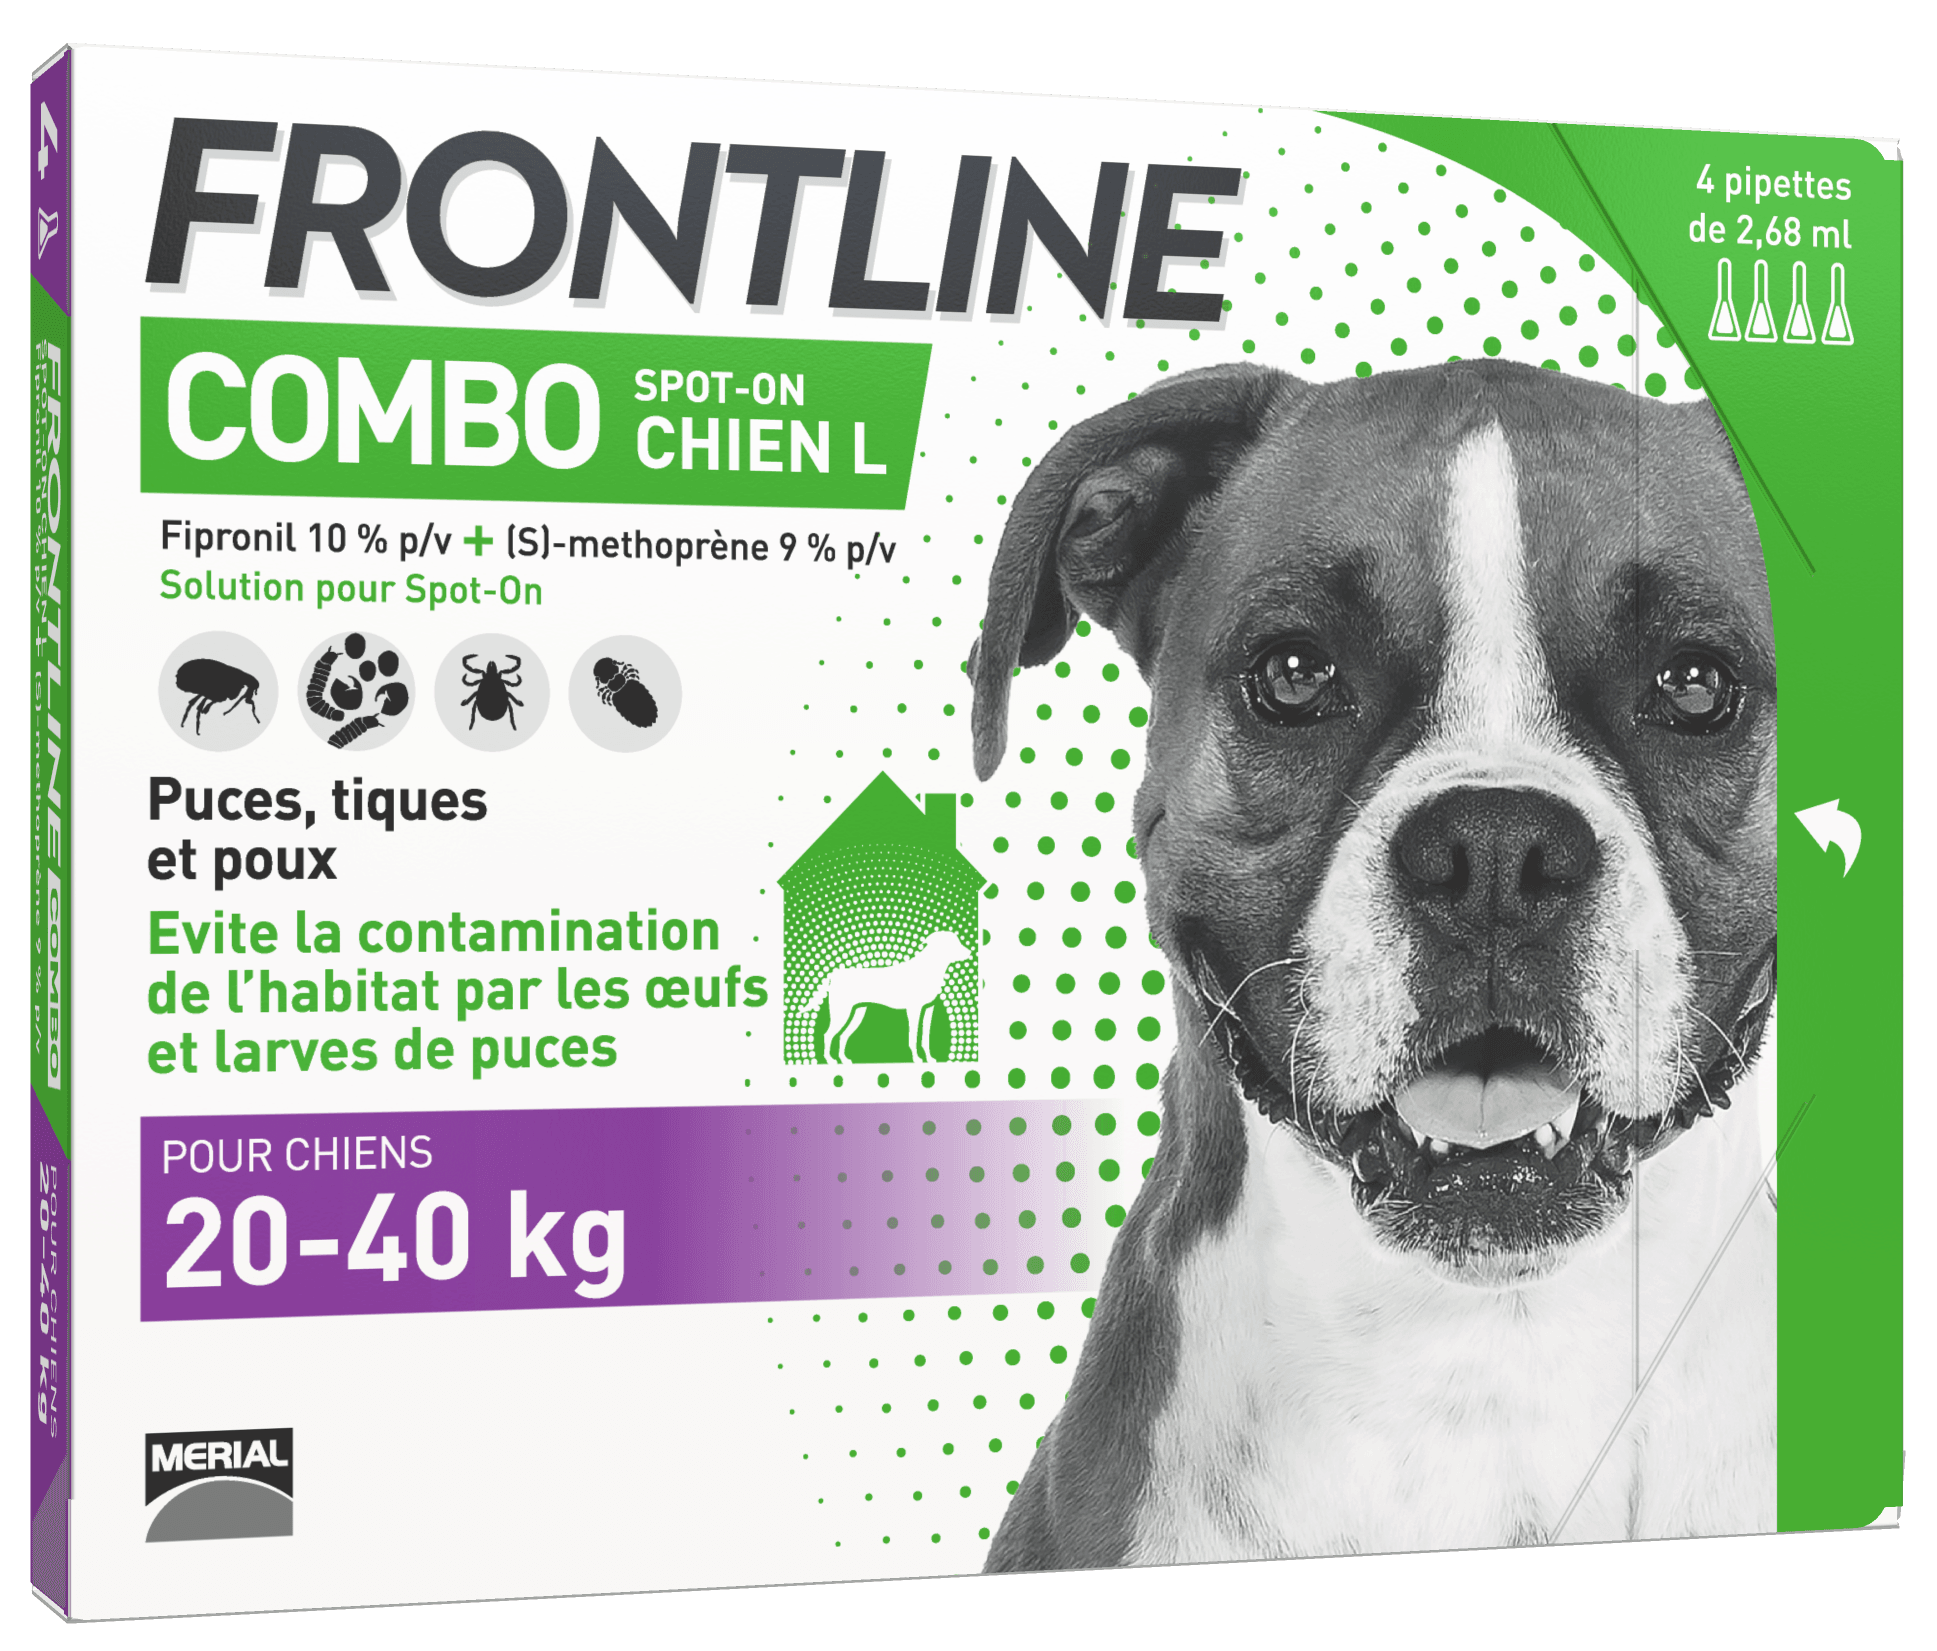 frontline combo chien anti-puces anti-tiques